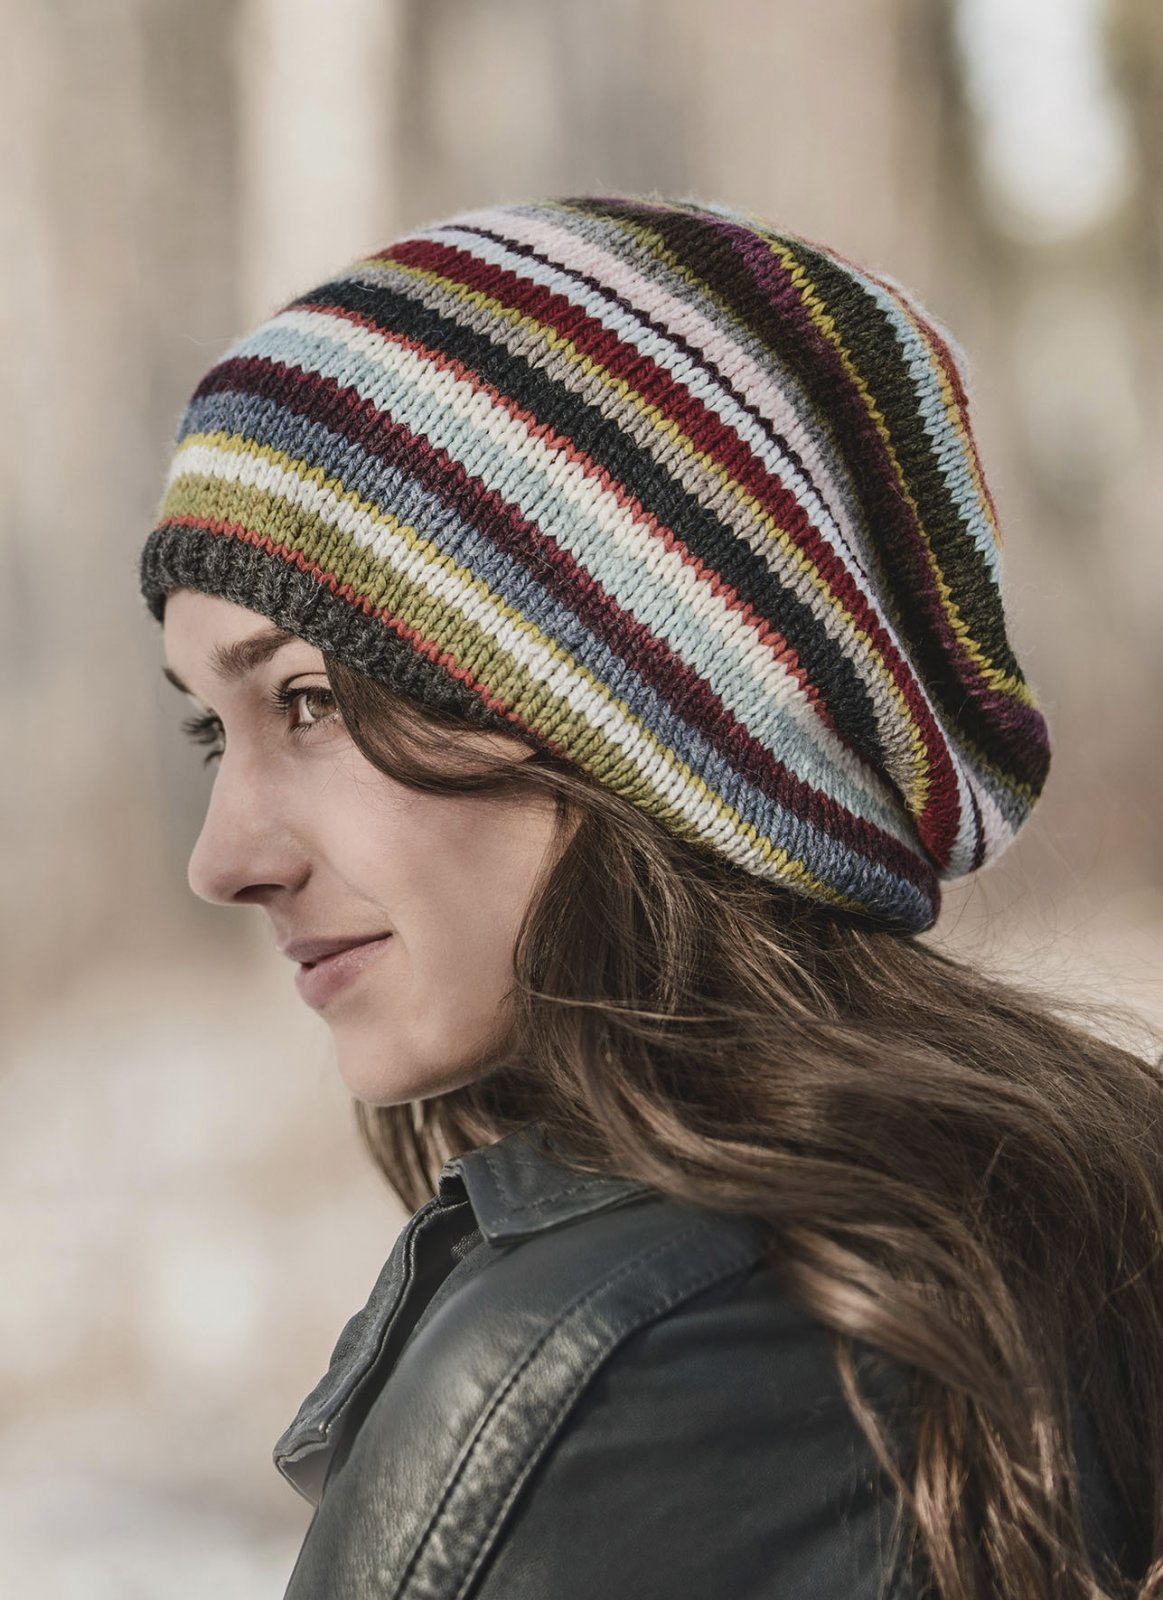 21 Color Slouch Hat Pattern (BSA-201617)